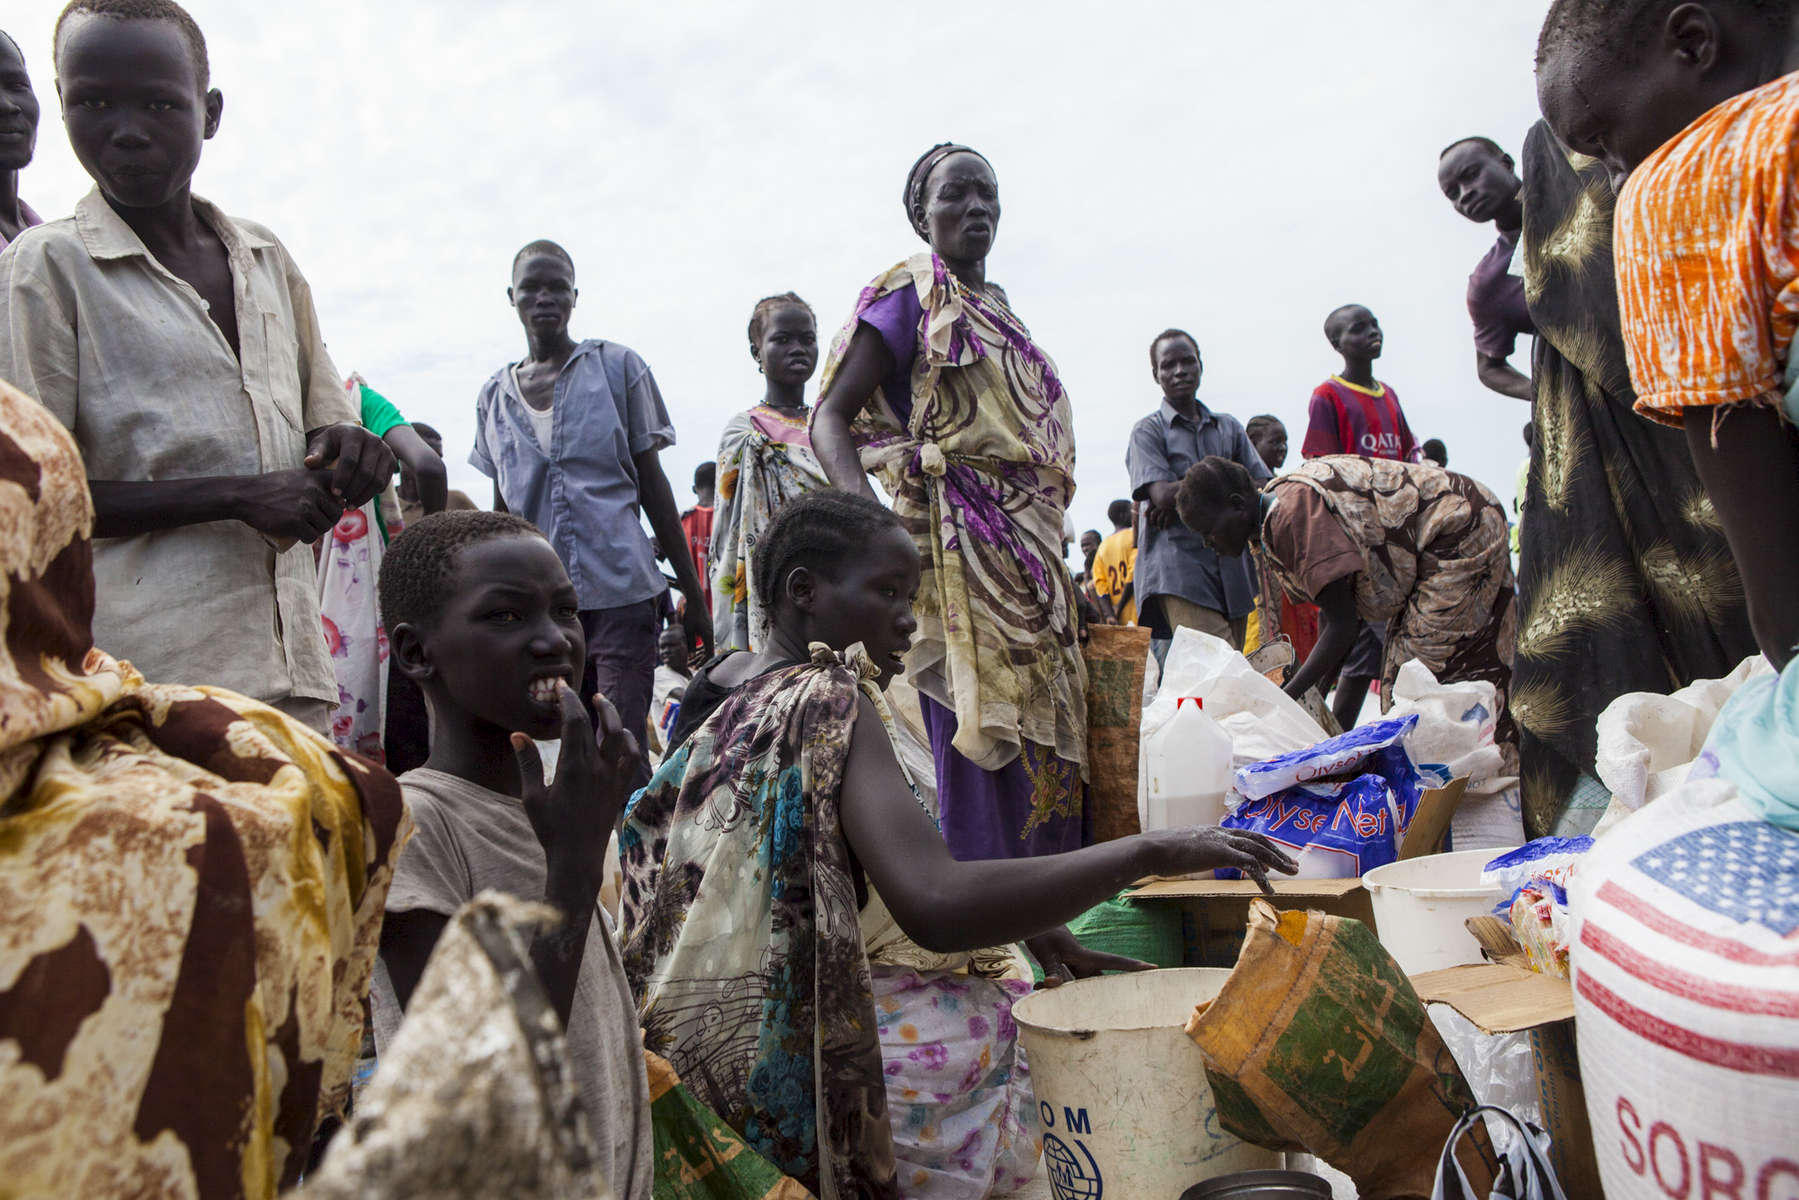 People gather to divide supplies at the World Food Program food distribution in the Protection of Civilians (POC) site at the United Nations Mission in South Sudan (UNMISS) compound in Malakal, South Sudan on Friday, July 15, 2016. The Malakal POC site houses over 32,000 displaced people mainly from the Shilluk and Nuer tribes. In February of this year, members of the Dinka tribe, who resided in the camp at the time, carried out a coordinated attack within the site leading to the destruction of hundreds of shelters and many deaths. Since then, most members of the Dinka tribe have fled to Malakal town where they occupy the homes of those still displaced. The UN has assured the displaced people that increased security measures around the camp will protect them from any further attack. Most of the displace are not convinced.